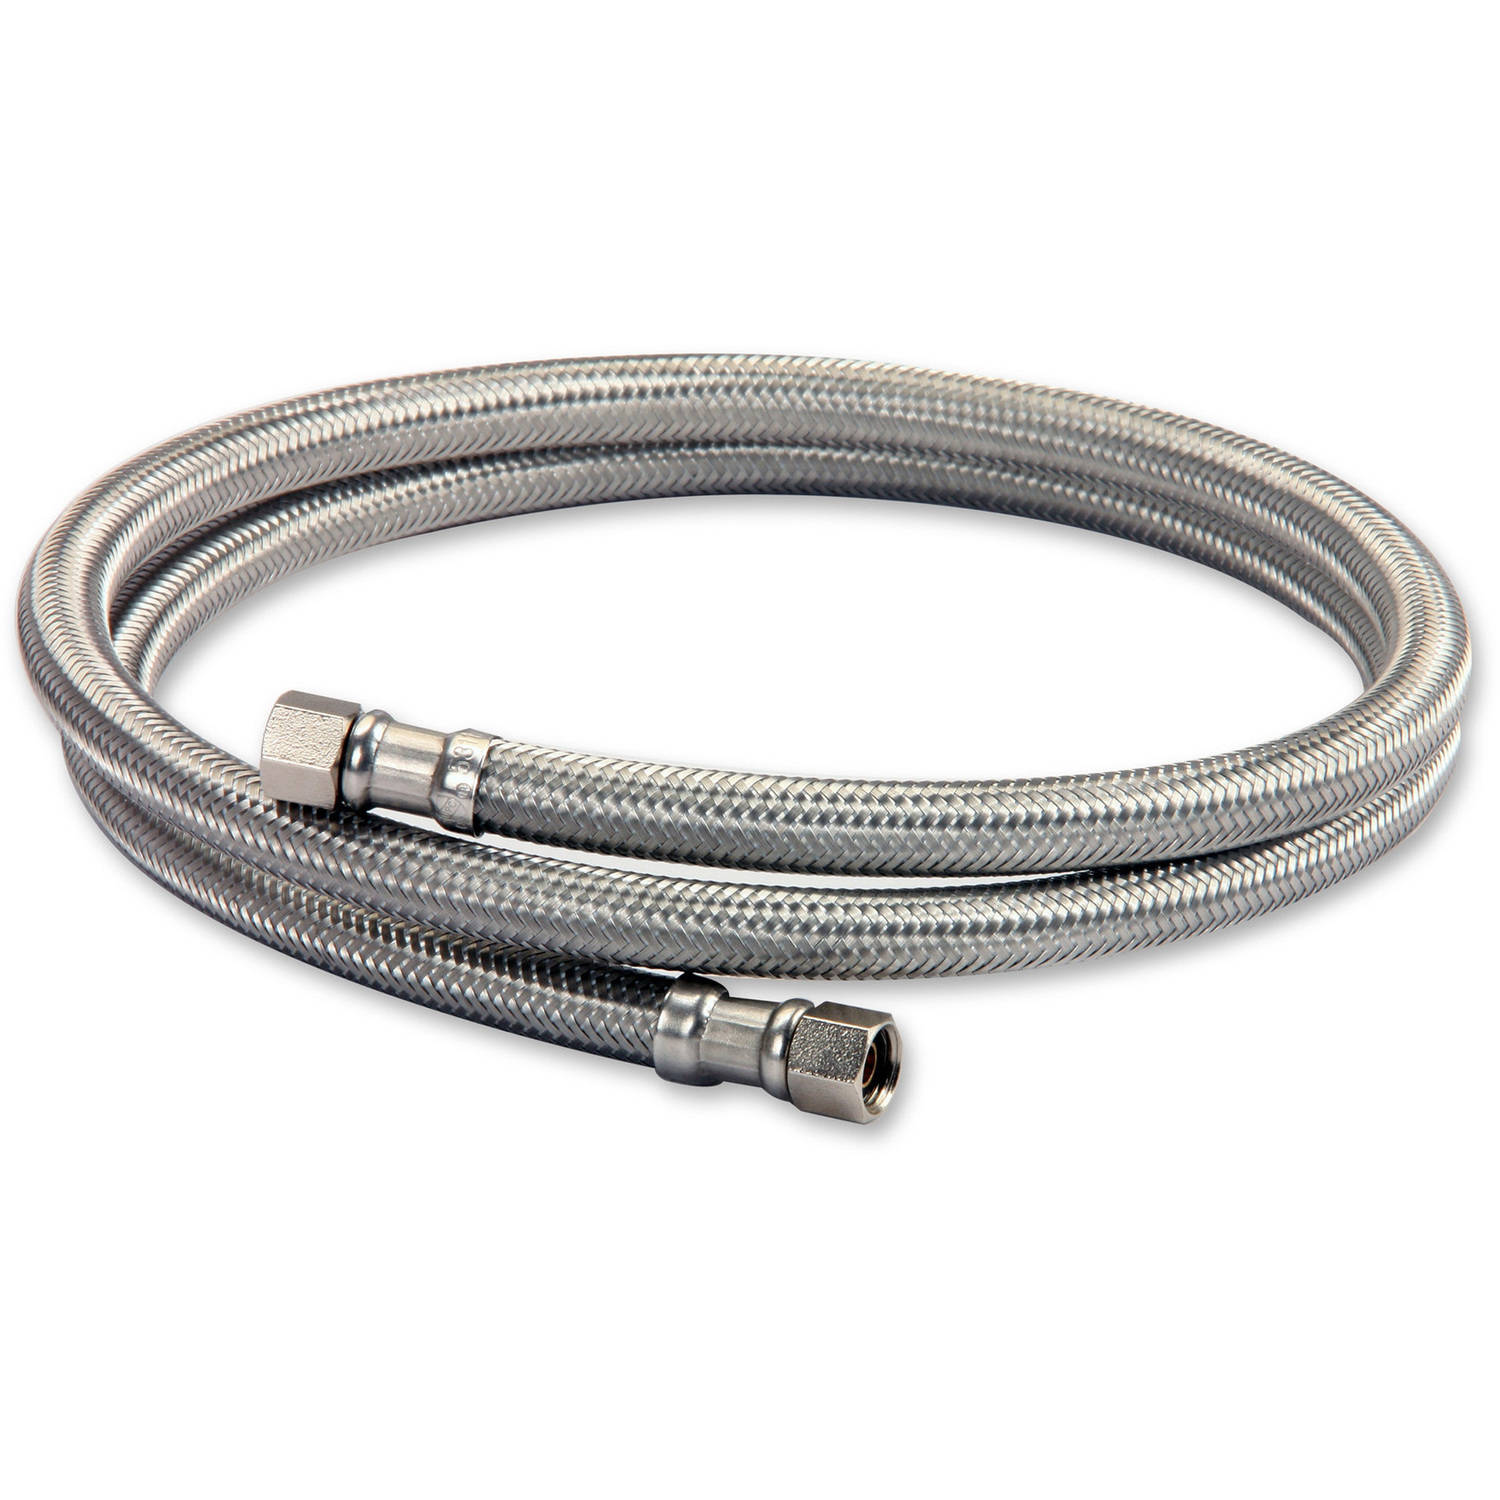 "Everflow Supplies 26610-NL Lead Free Stainless Steel Braided Ice Maker Supply Line with Two 1/4"" Fittings on Both Ends, 120"""